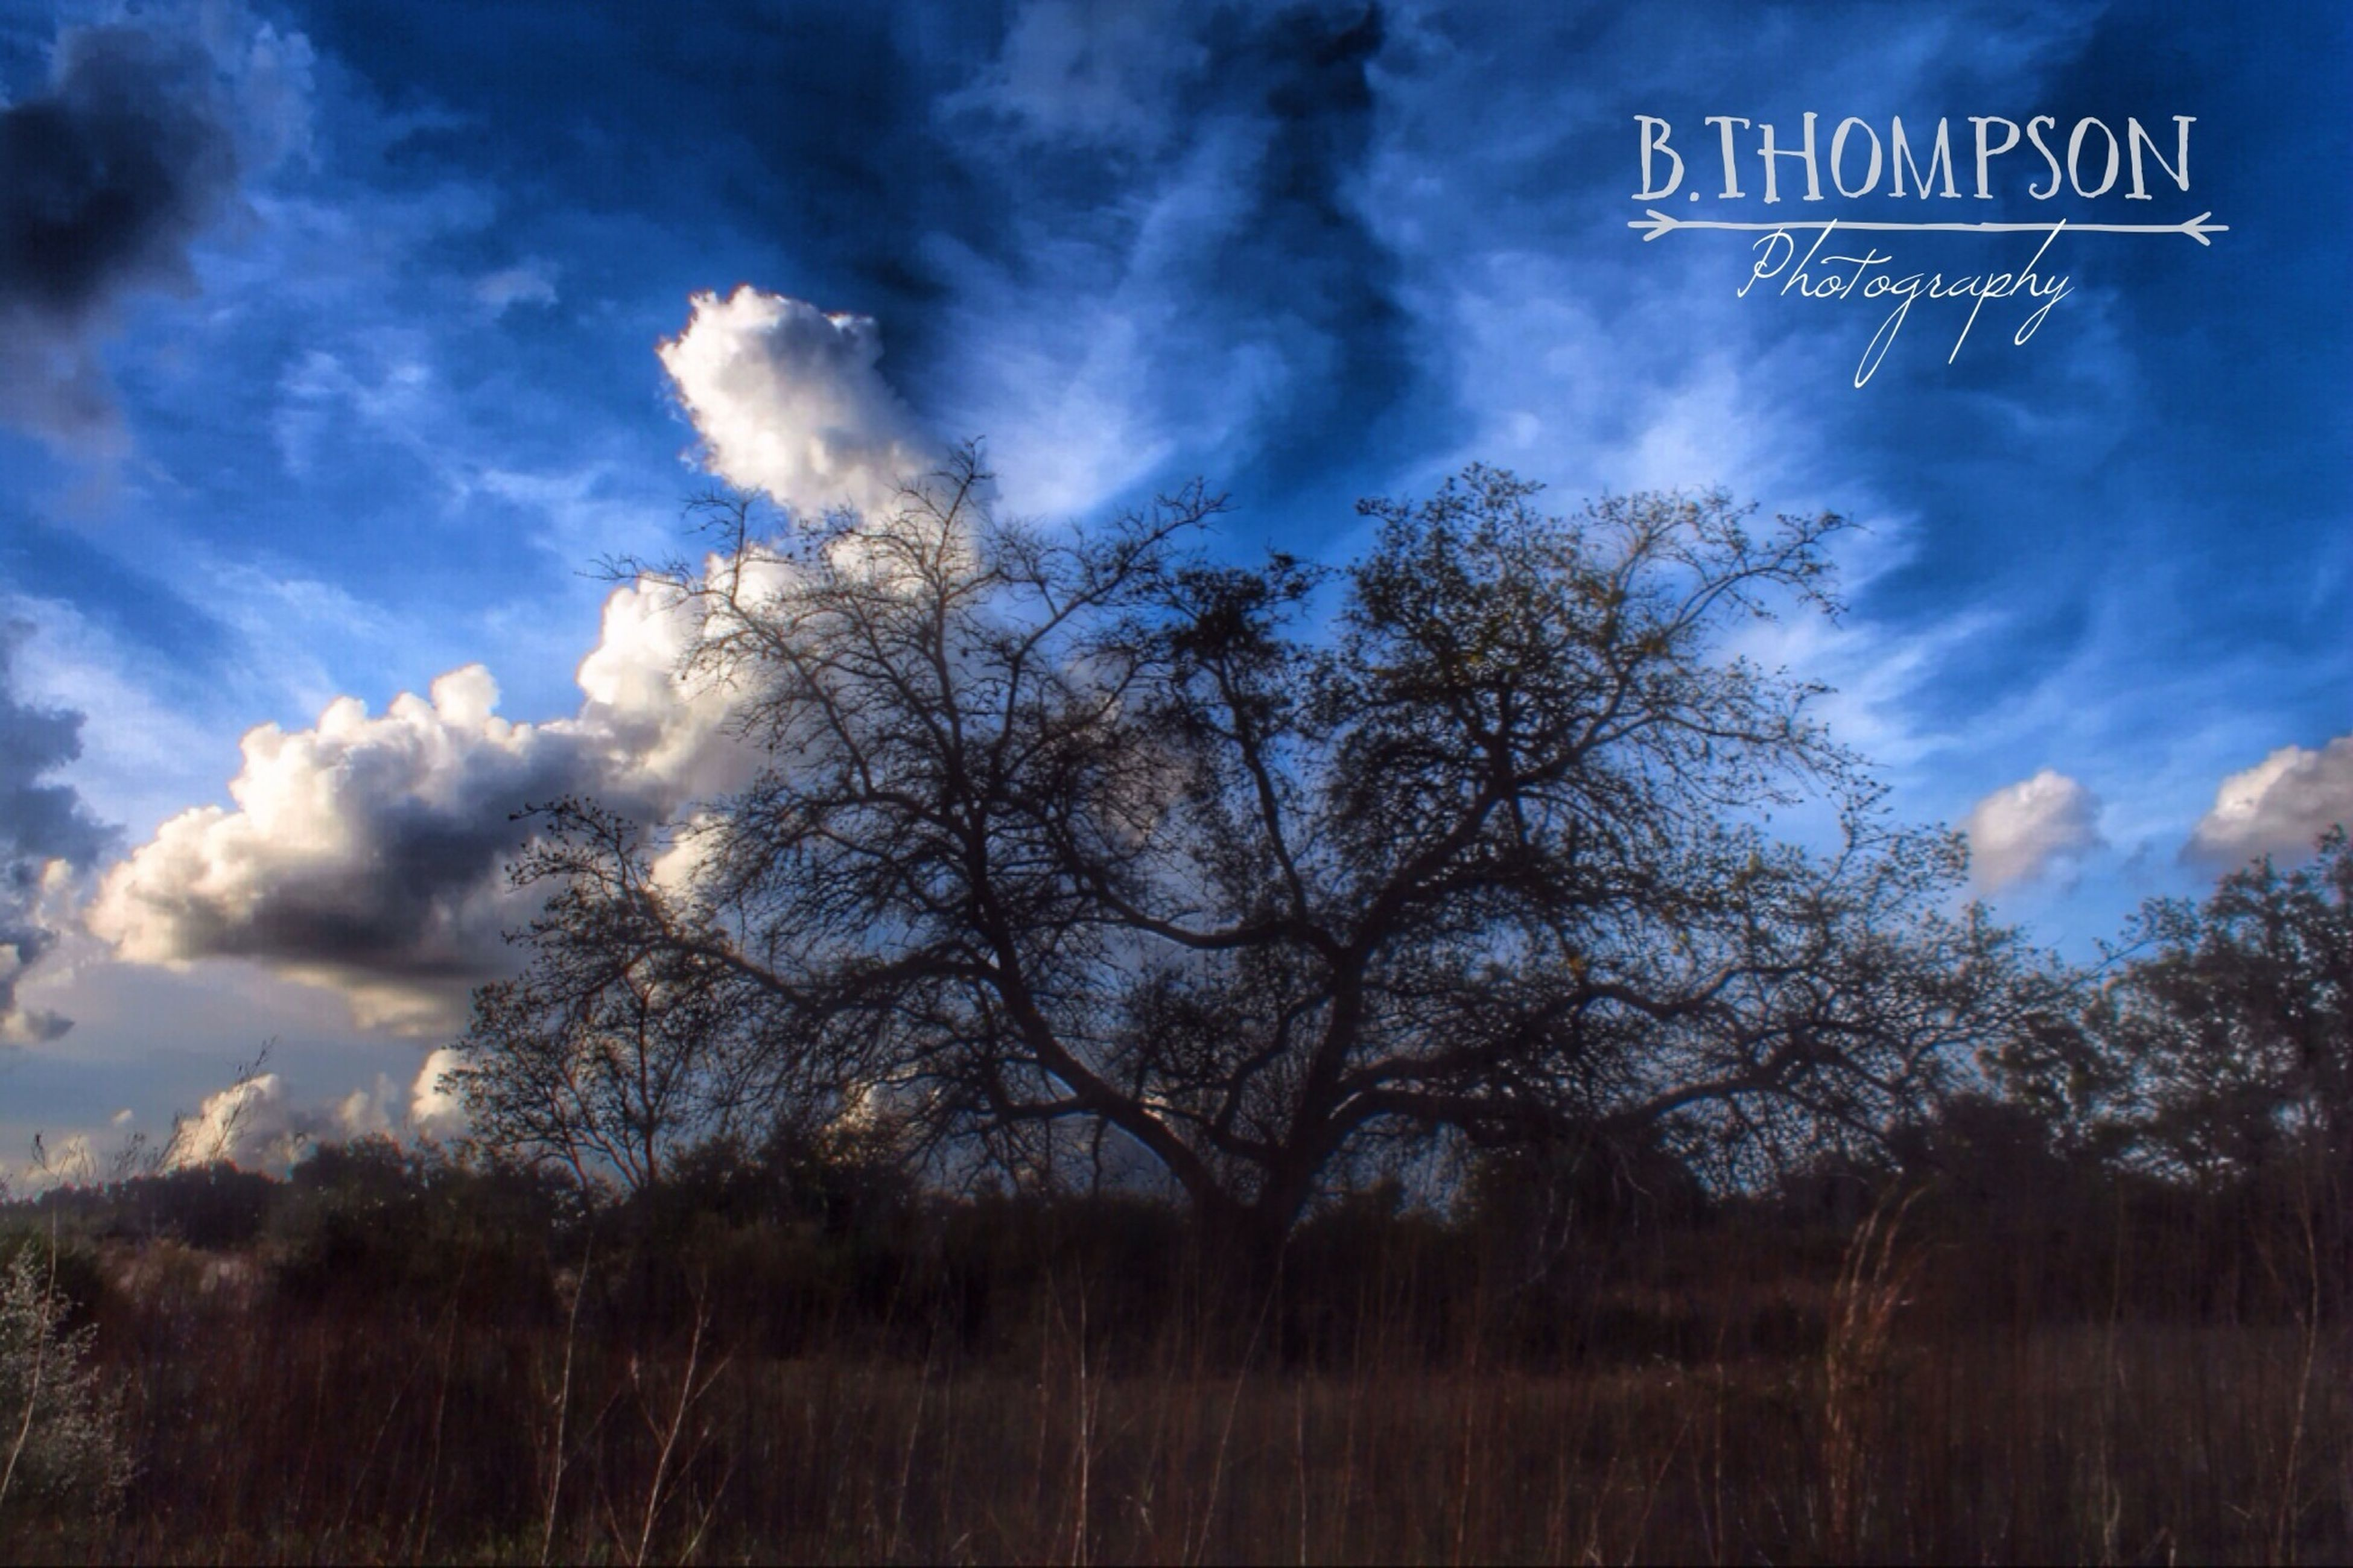 sky, text, tree, cloud - sky, western script, low angle view, communication, cloudy, cloud, nature, tranquility, blue, sign, information sign, beauty in nature, growth, road sign, tranquil scene, outdoors, no people